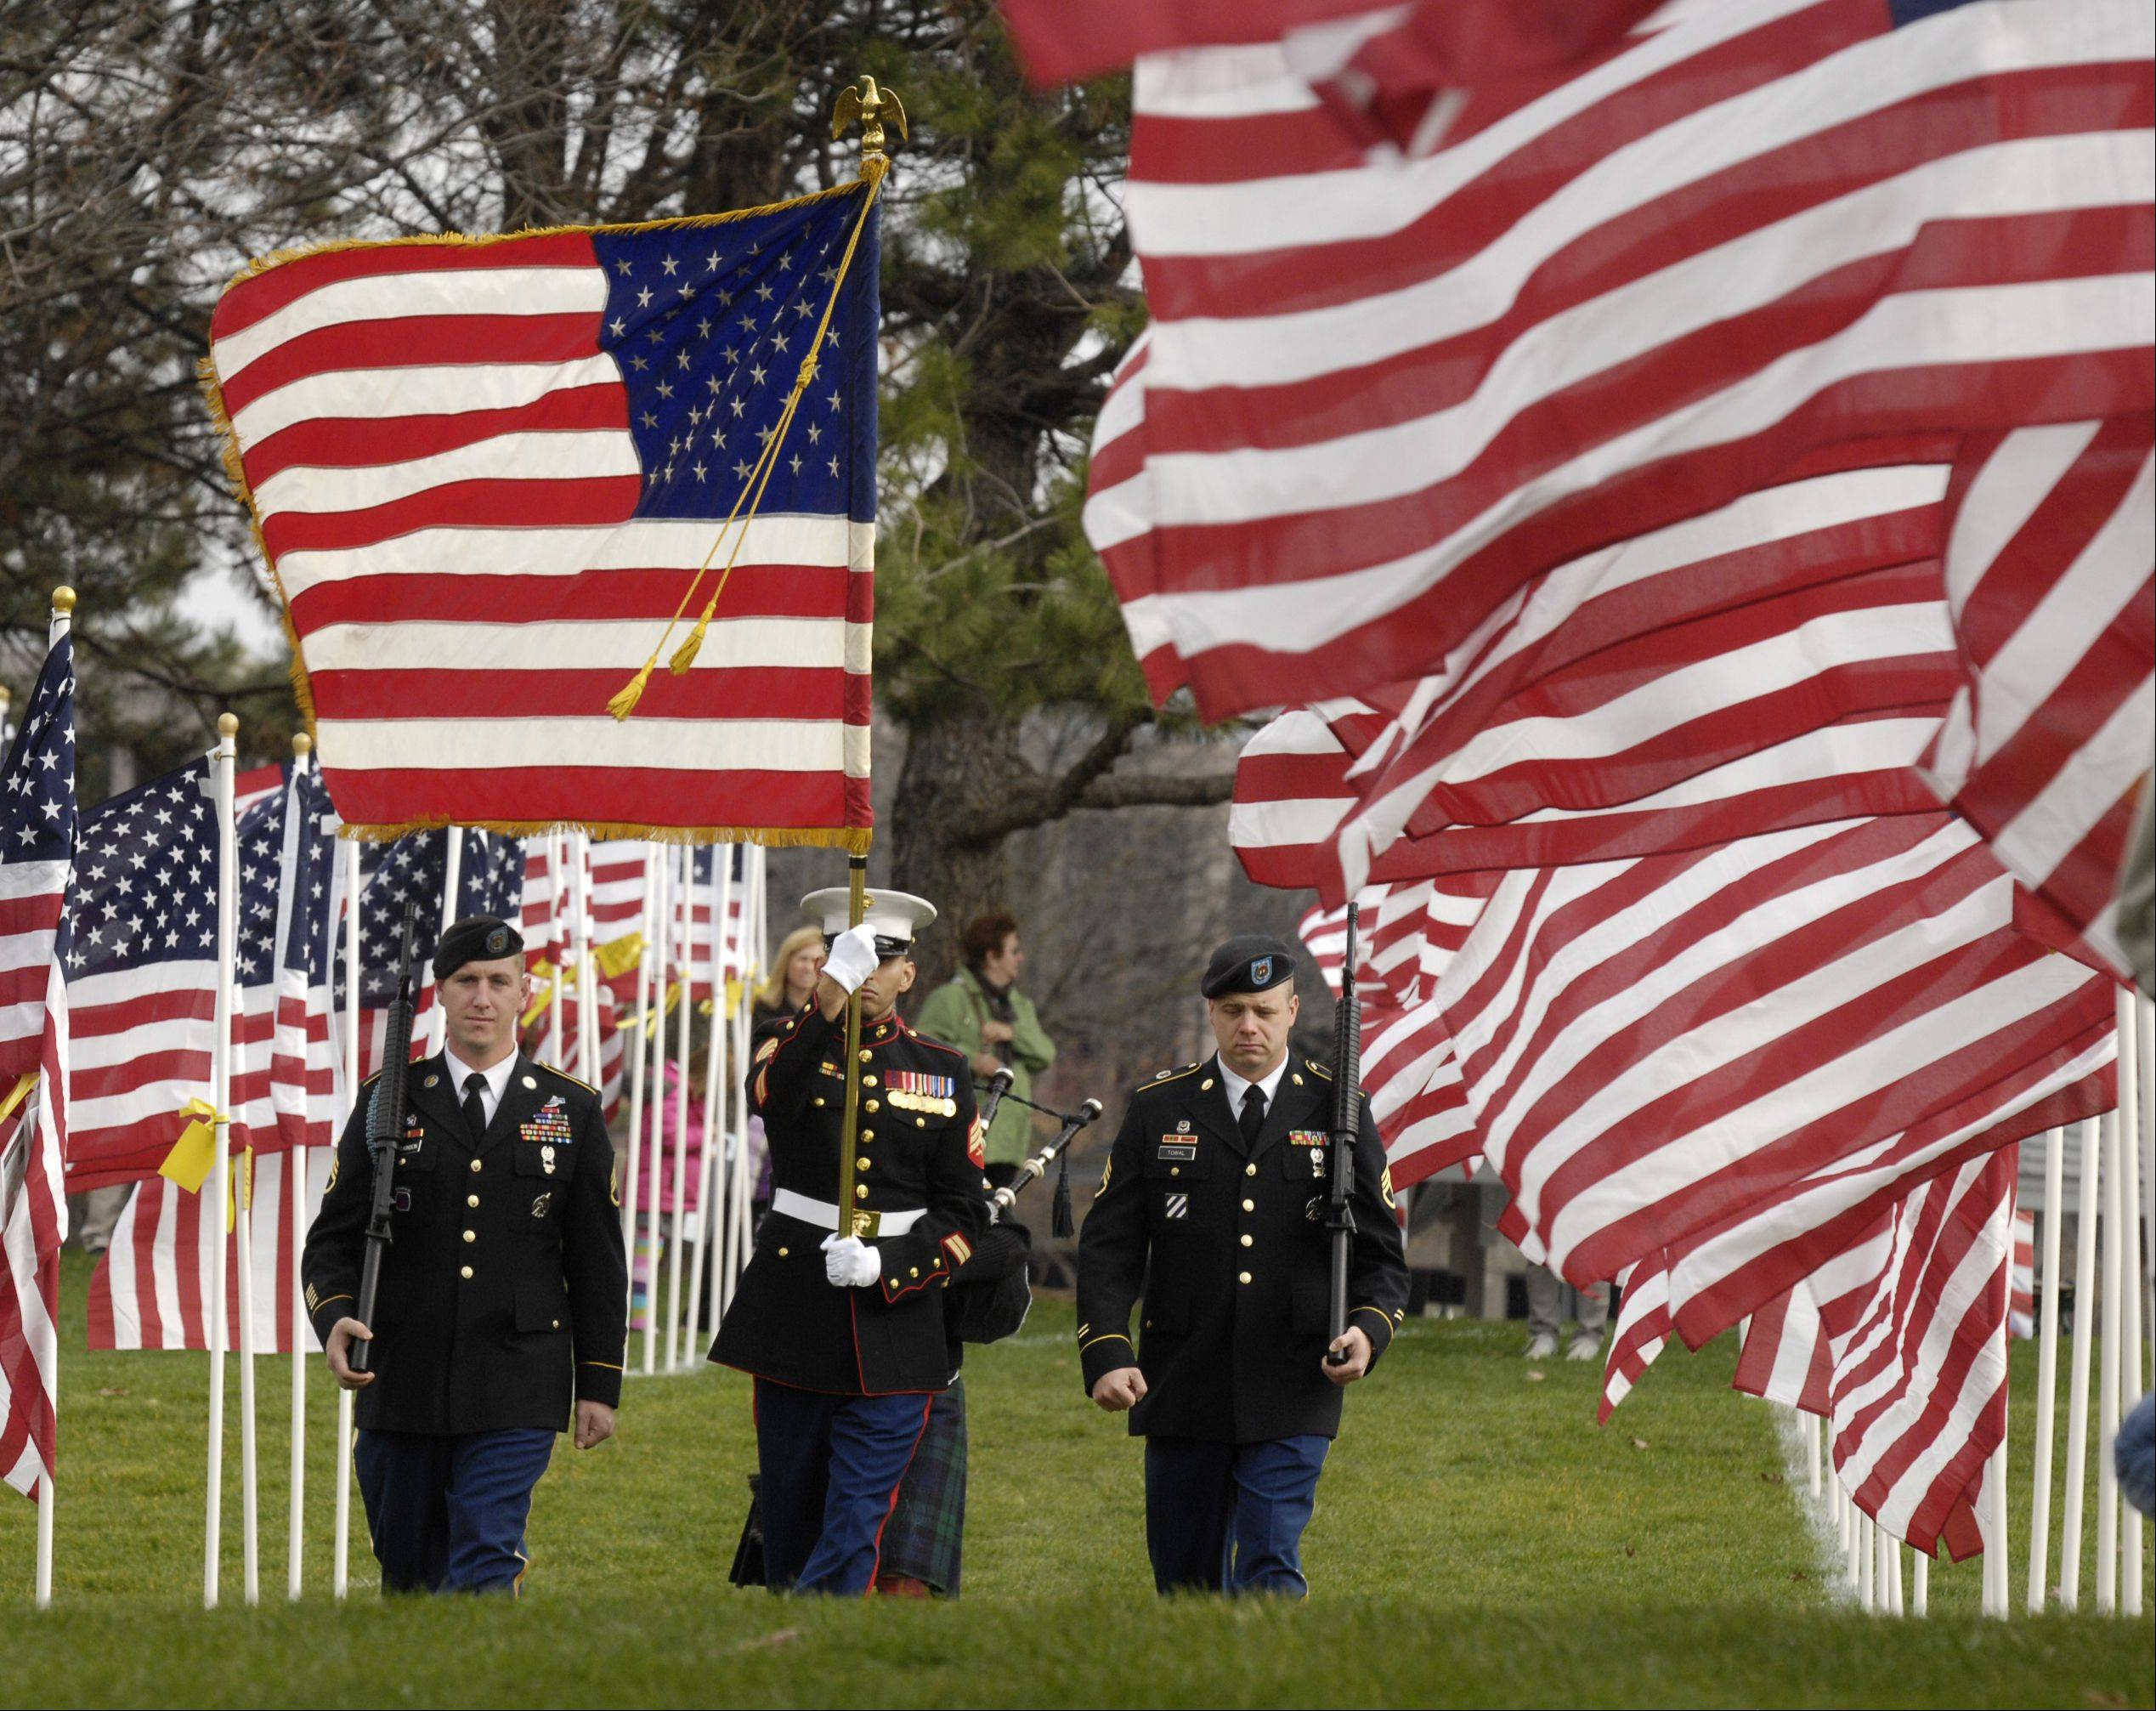 The Color Guard marches through the Naperville Healing Field to post the colors for the Naperville Veterans Day Ceremony, Sunday.